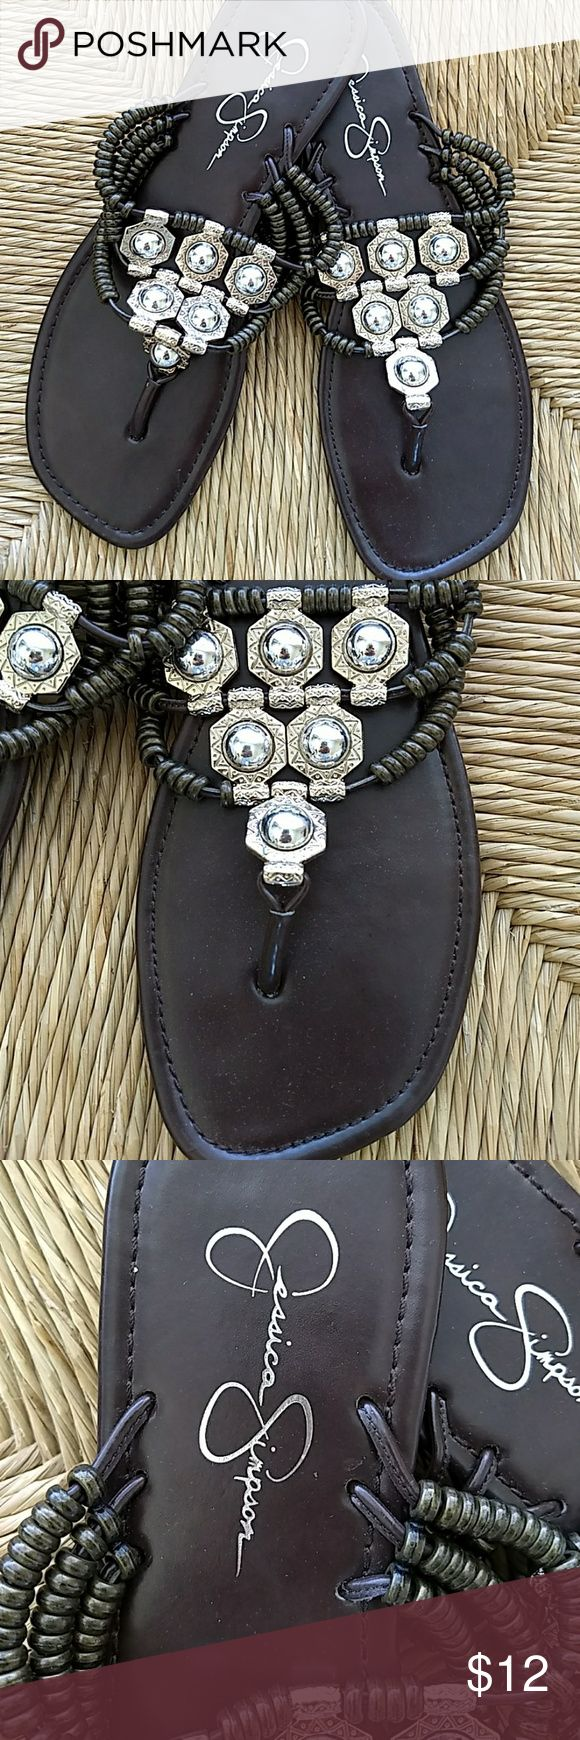 Jessica Simpson Beaded Sandals sz 8 Very nice barely worn Jessica Simpson sandals size 8 Jessica Simpson Shoes Sandals